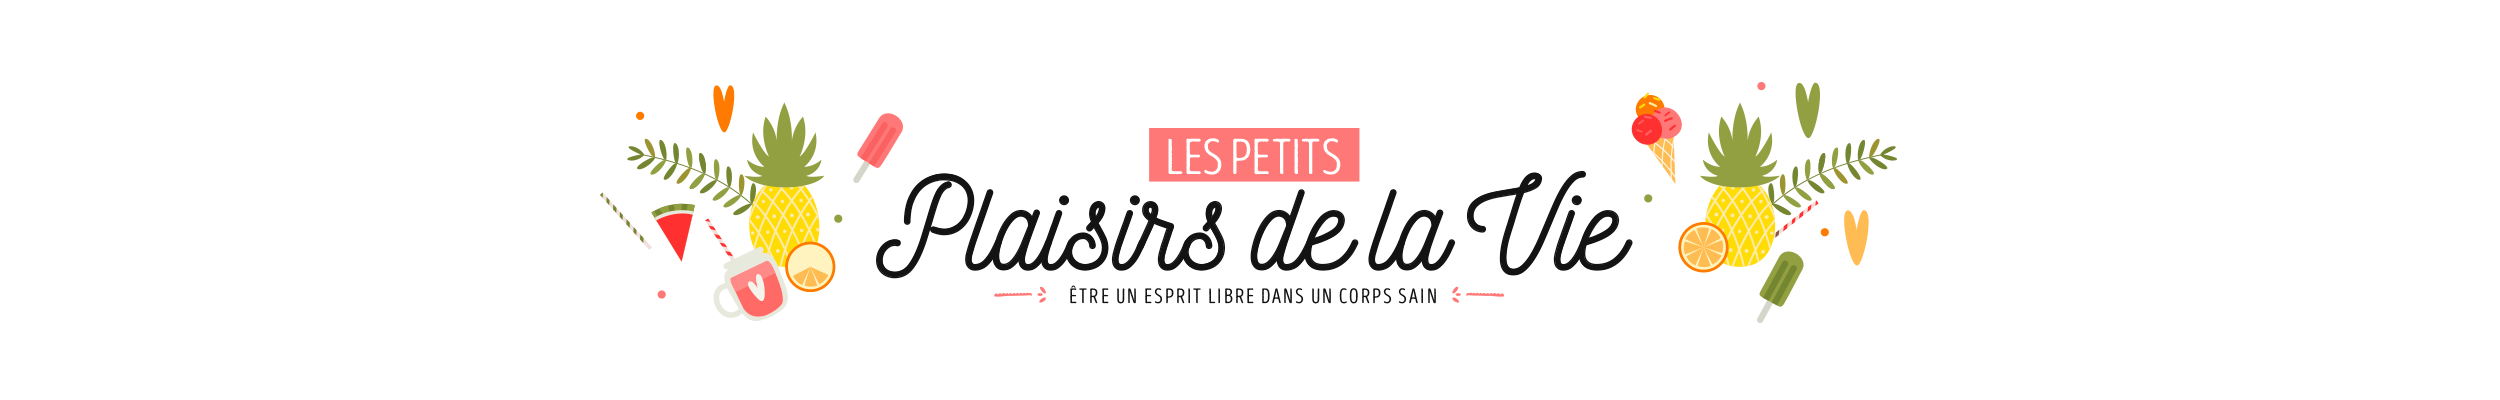 Les petits plaisirs de la vie • Naturopathie & Développement Personnel